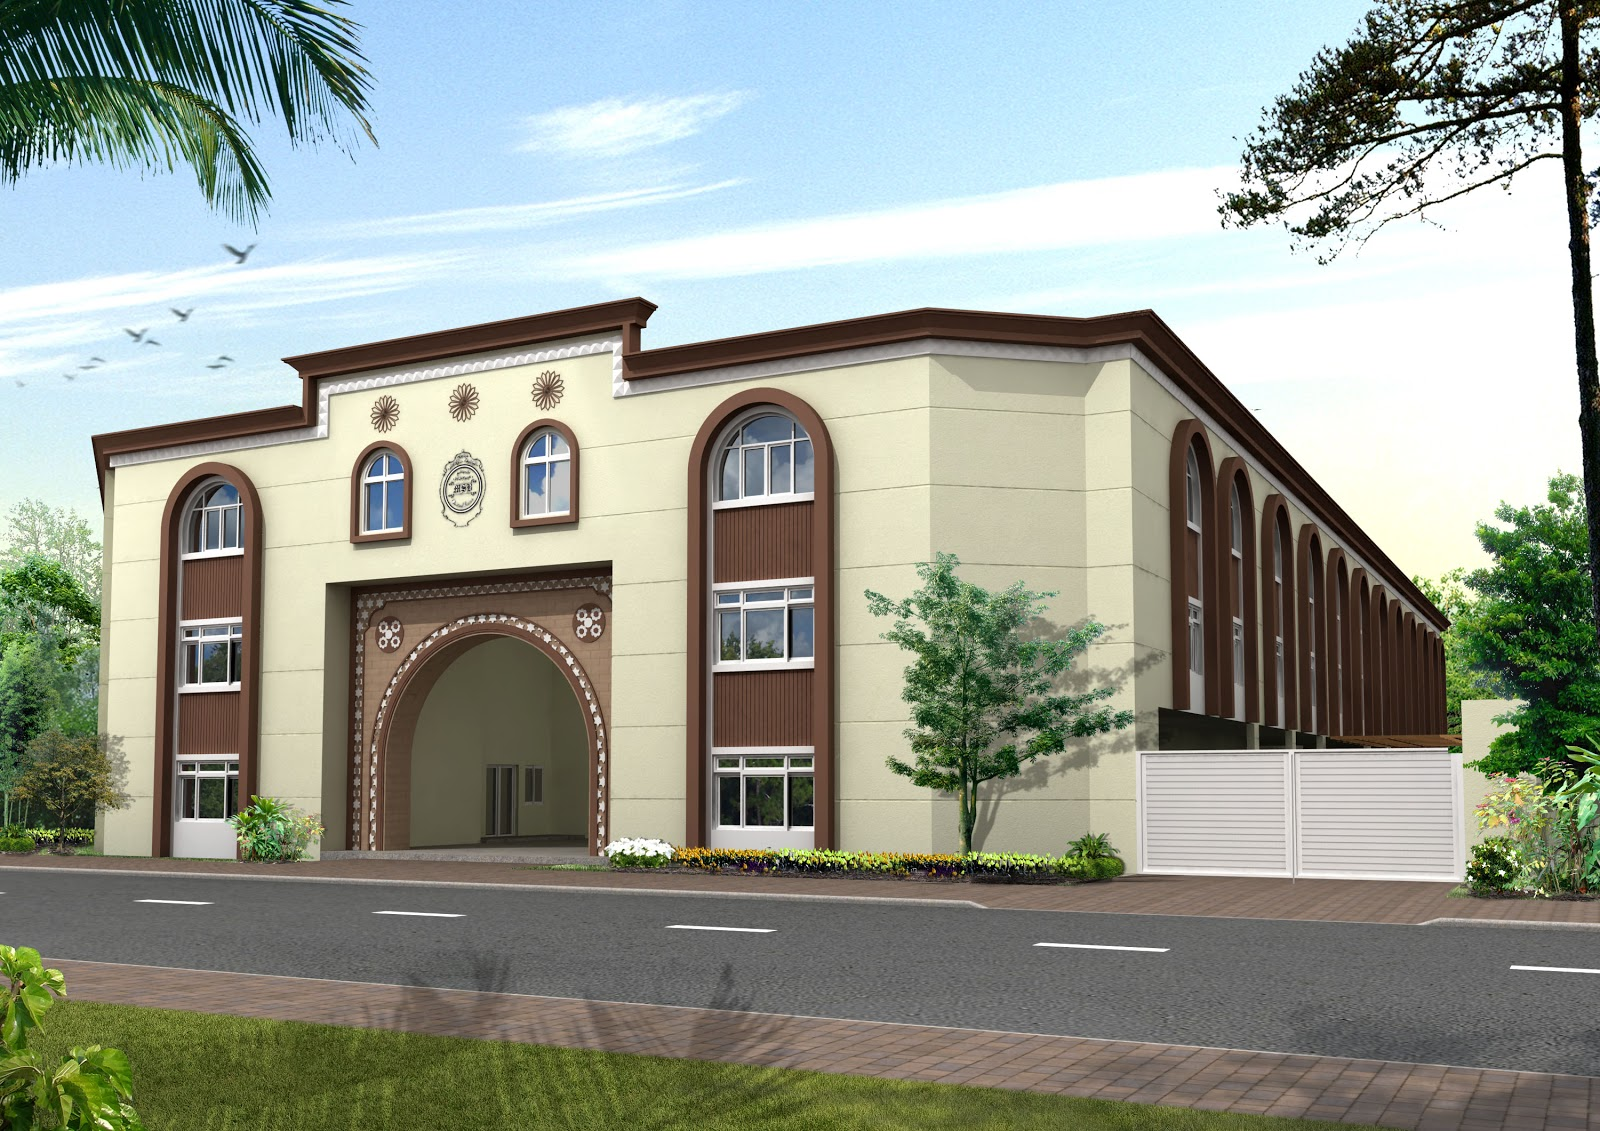 D Front Elevation Of School : Msb haidery karachi project front elevation